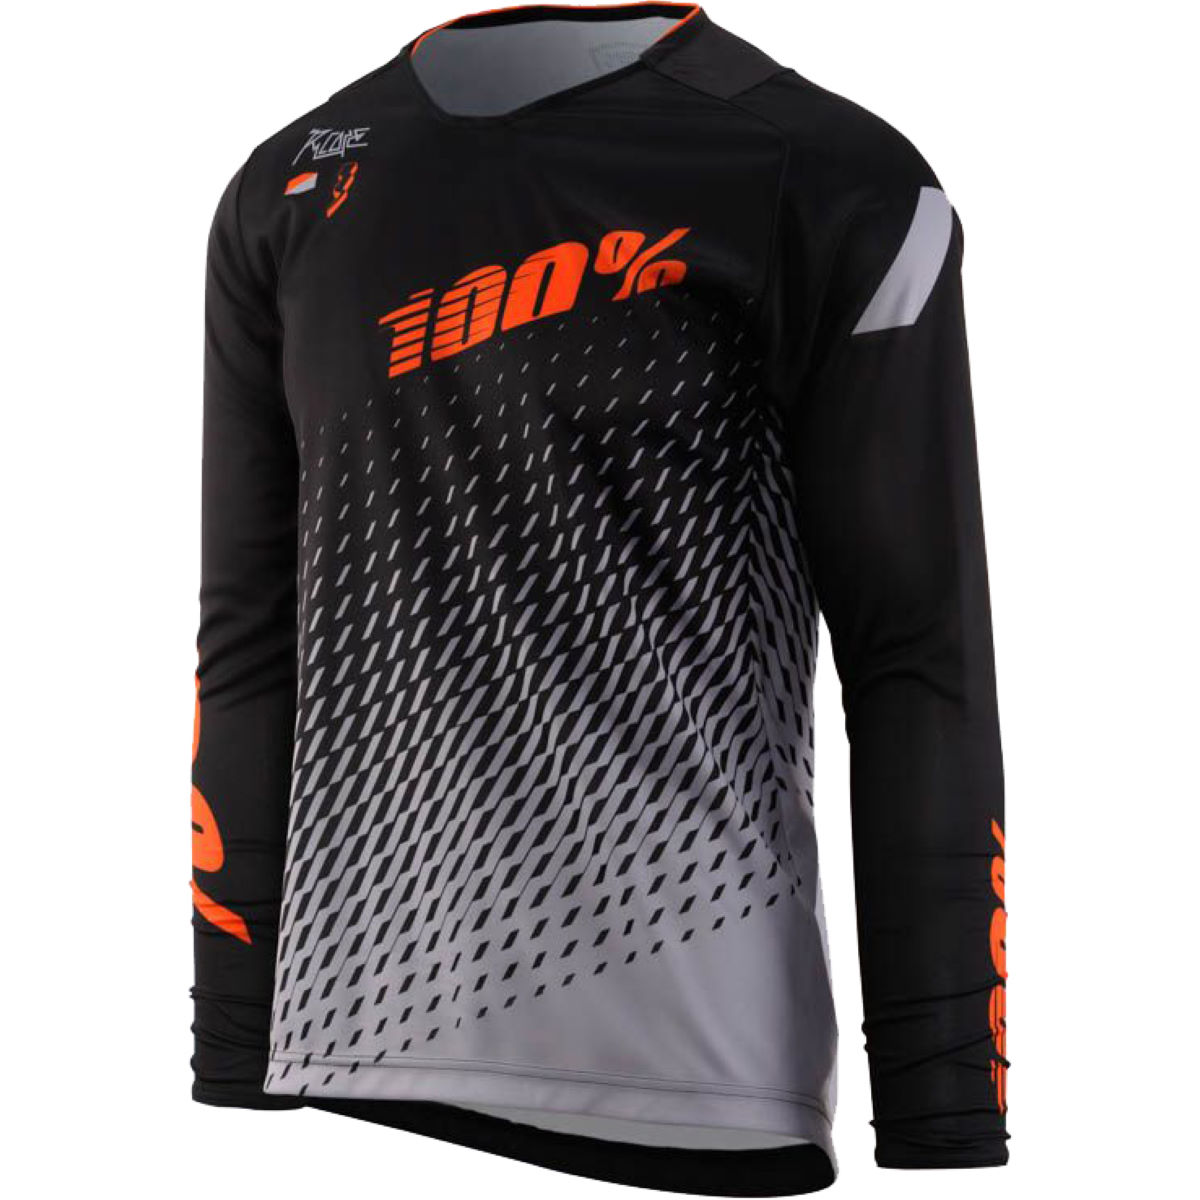 Maillot 100% R-Core Supra DH - S Black - Grey Maillots - Descente